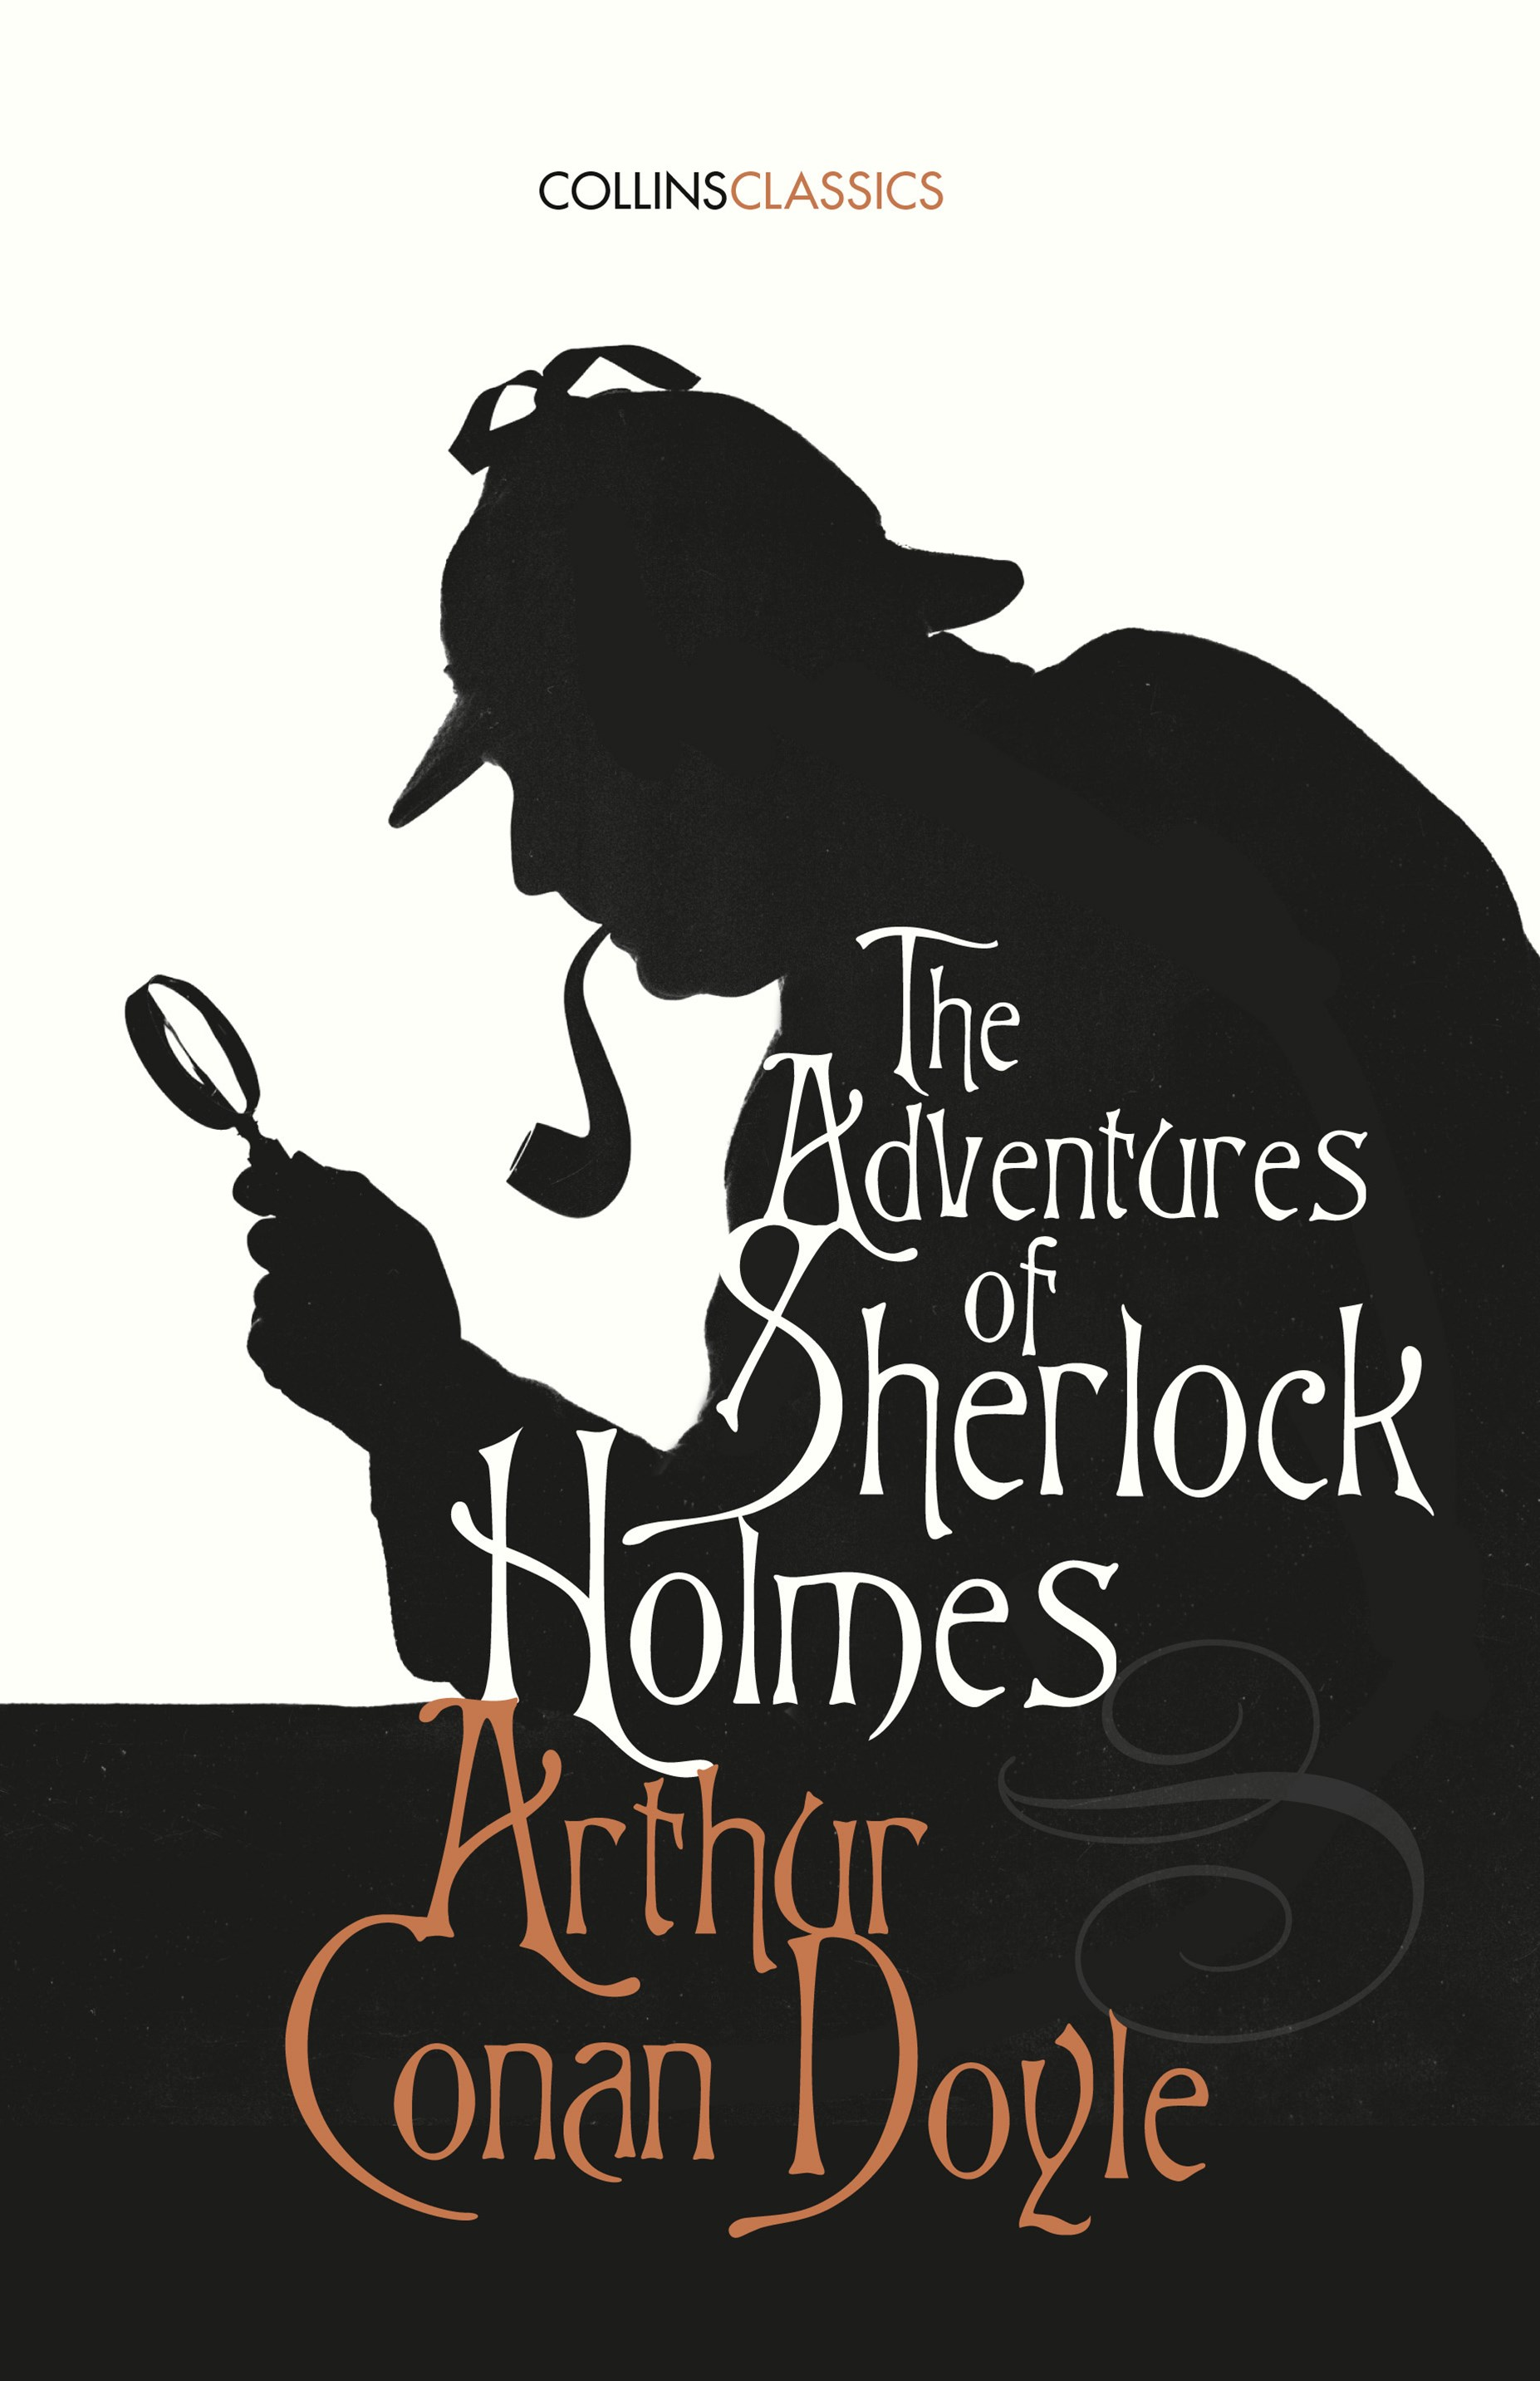 Collins Classics - The Adventures of Sherlock Holmes